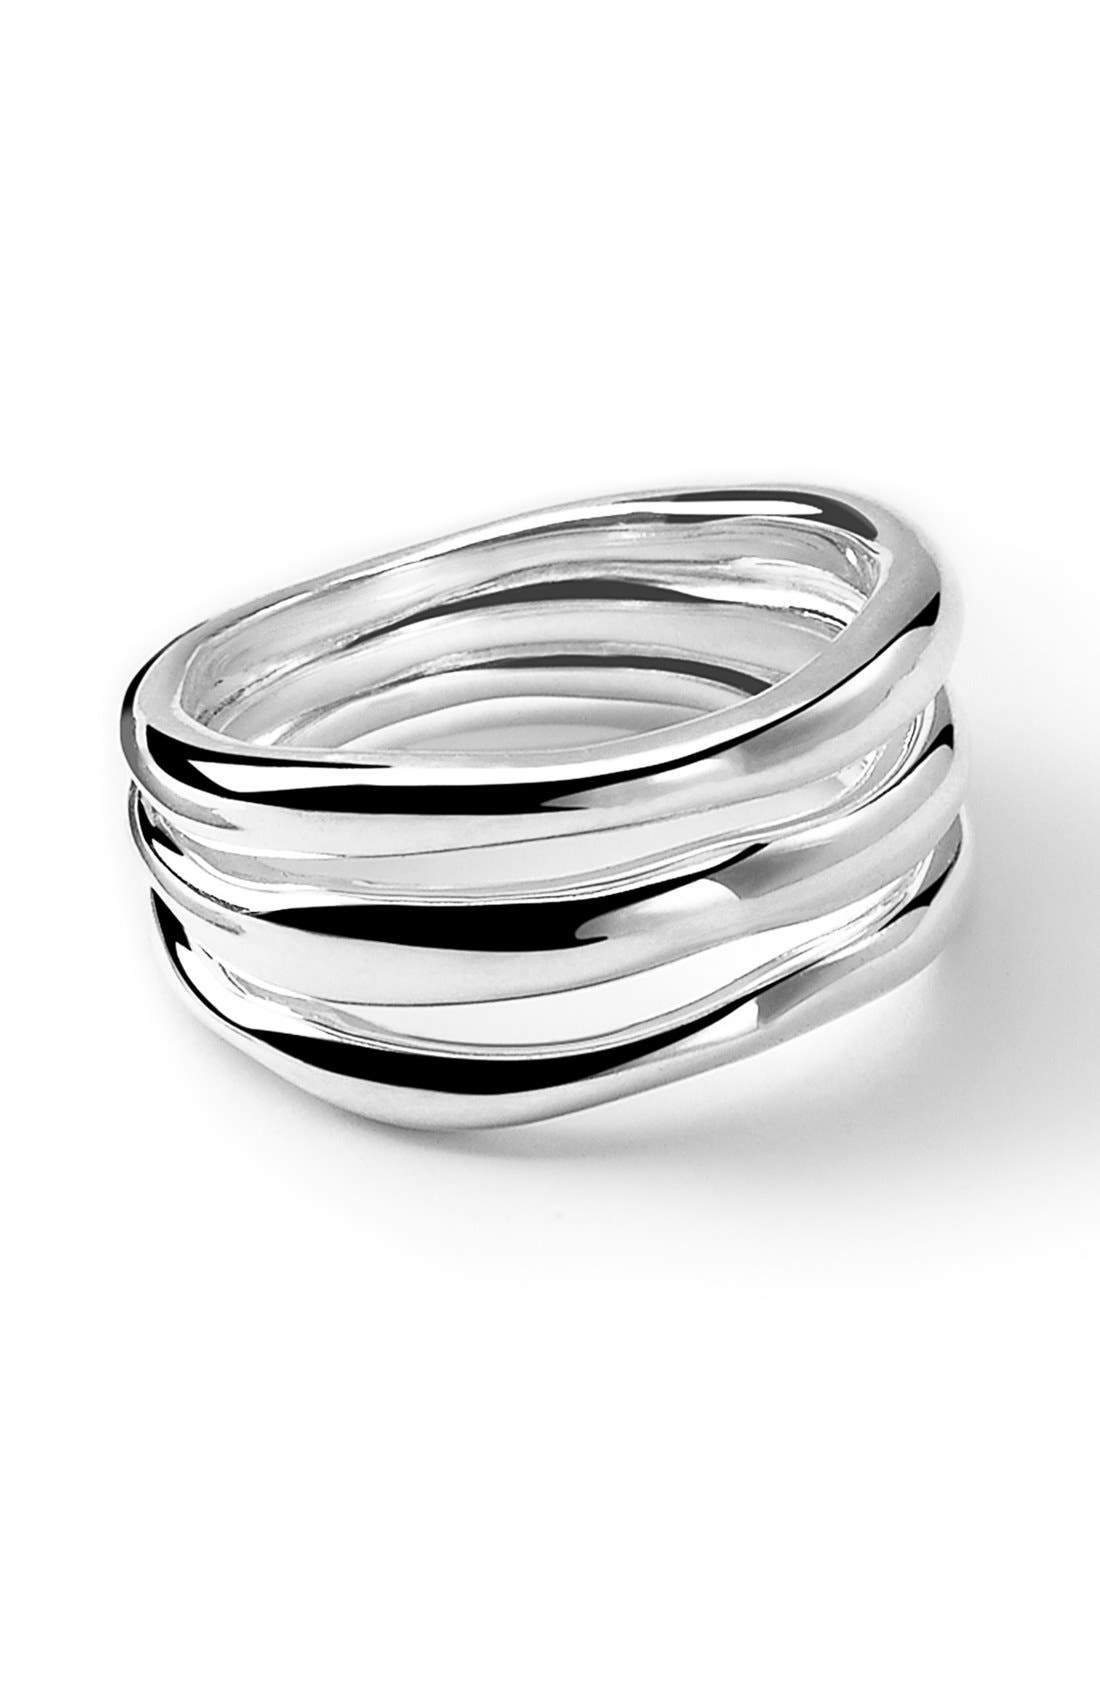 'Glamazon' Triple-Band Ring,                             Main thumbnail 1, color,                             040